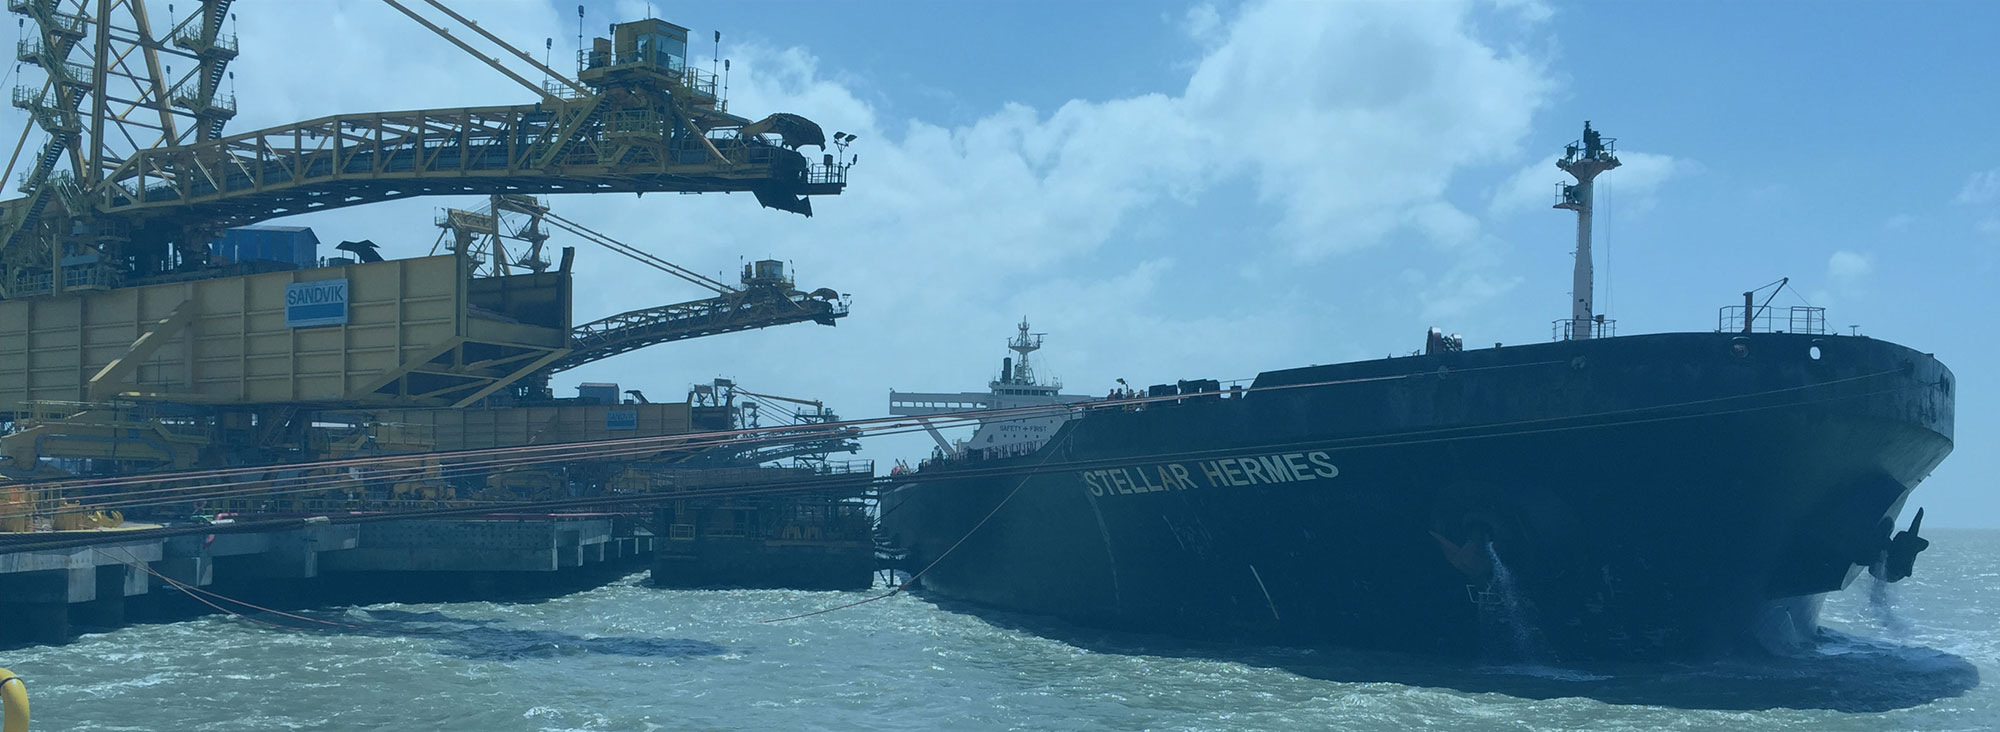 Brazil's largest iron ore terminal